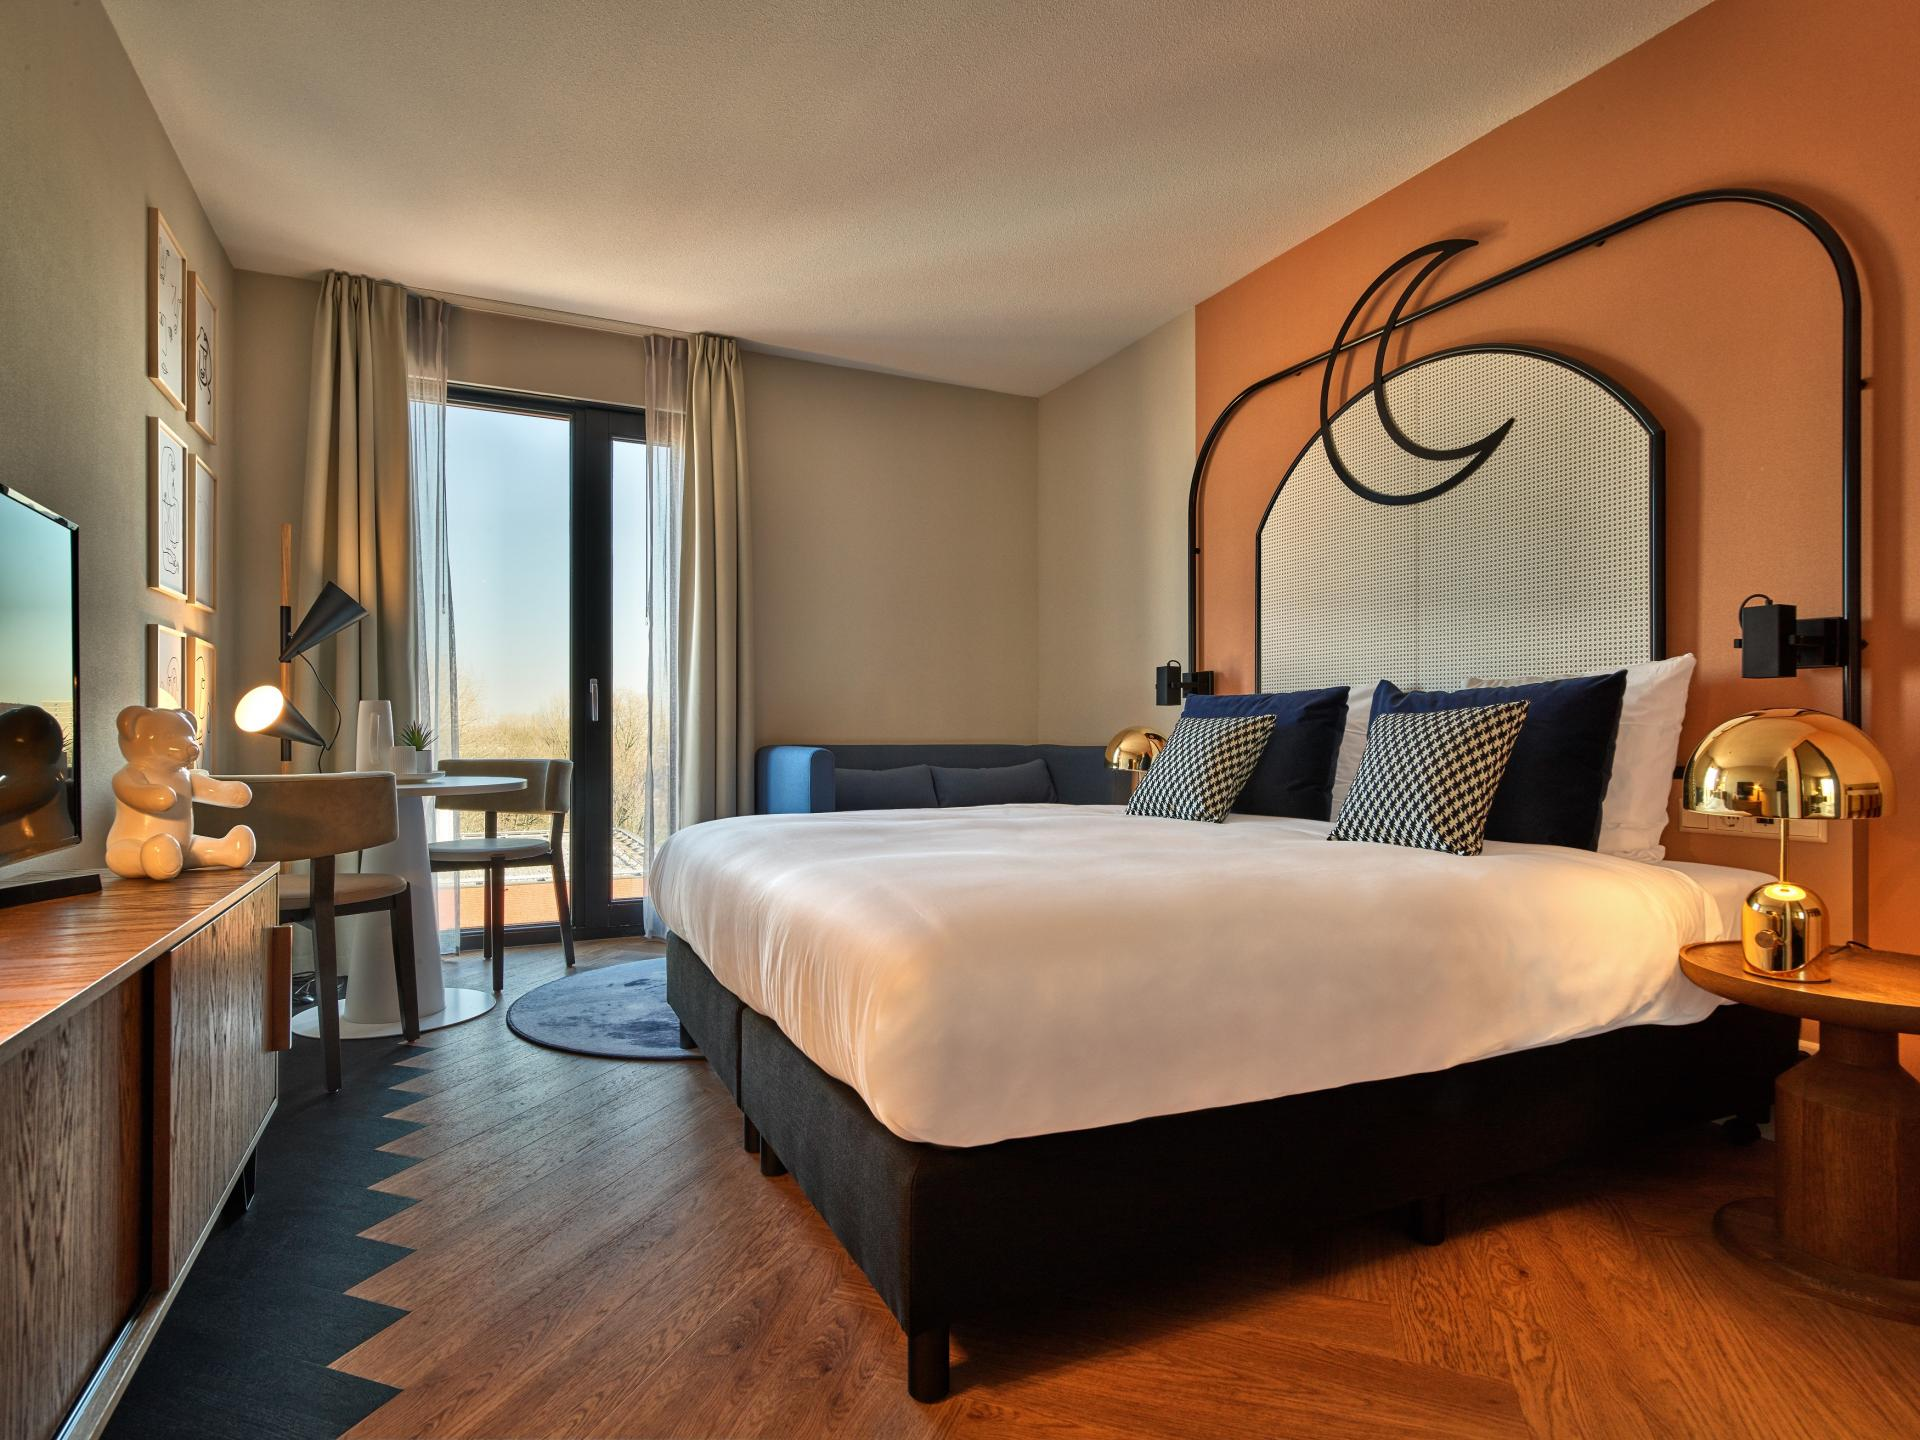 Bedroom at The Garden Apartments - Citybase Apartments